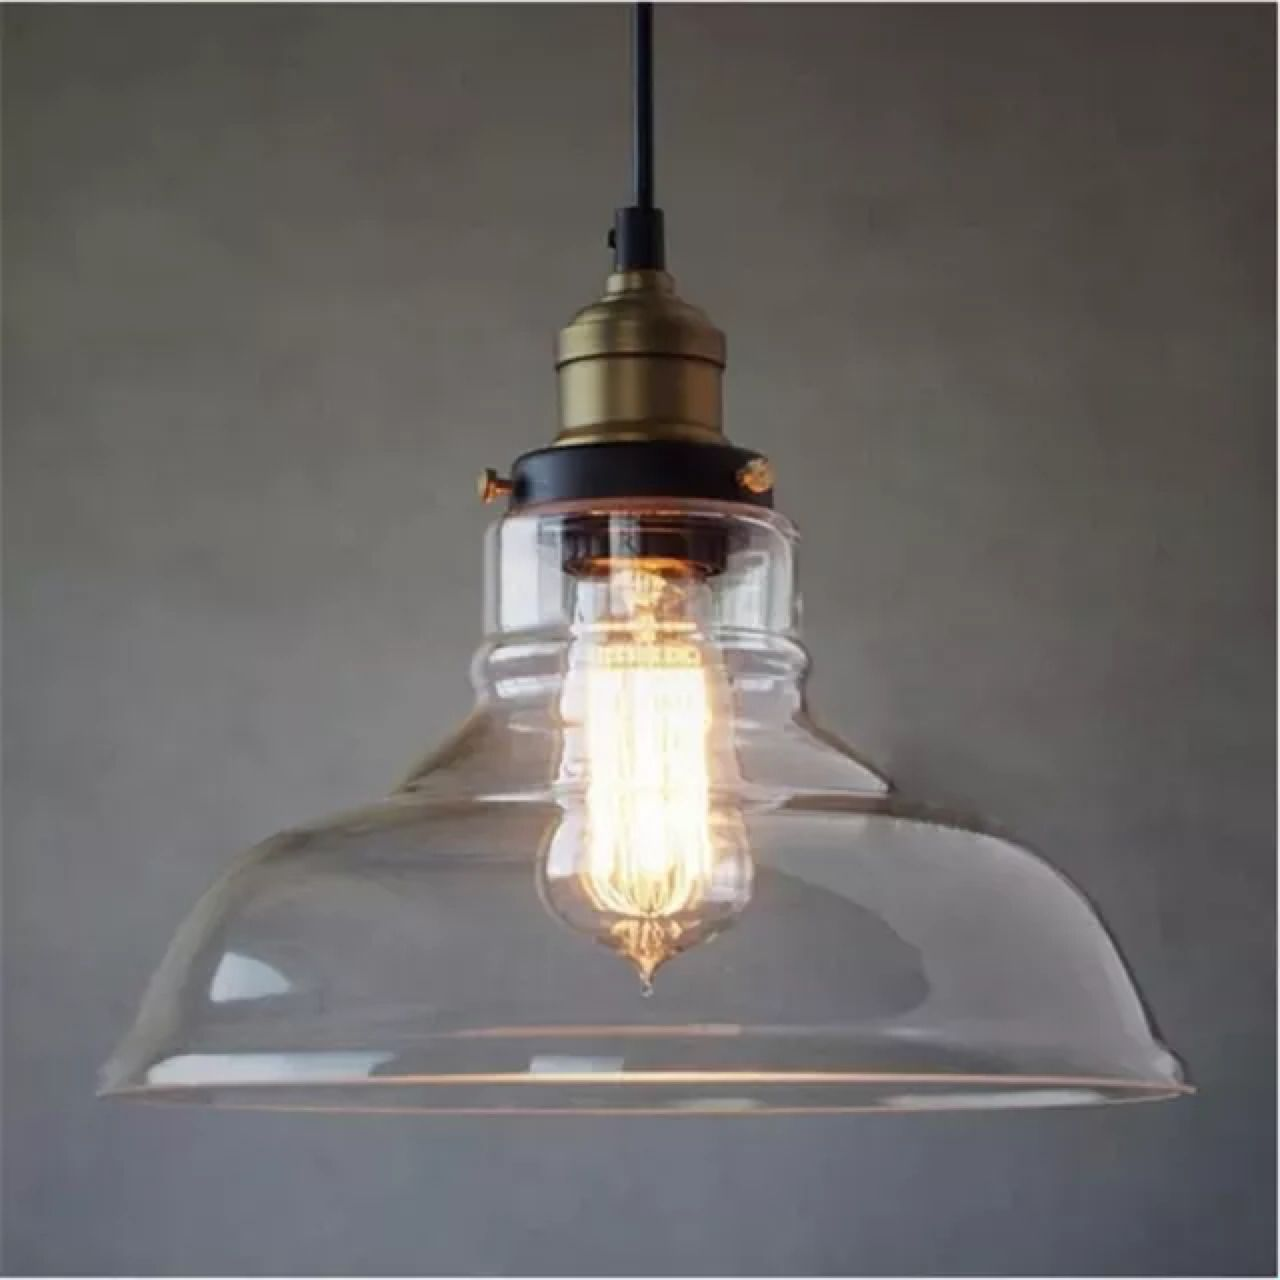 Modern Industrial Lighting Fixtures. Glass Pendant With Retro Cloth Wire   Clear Hanging Light Vintage